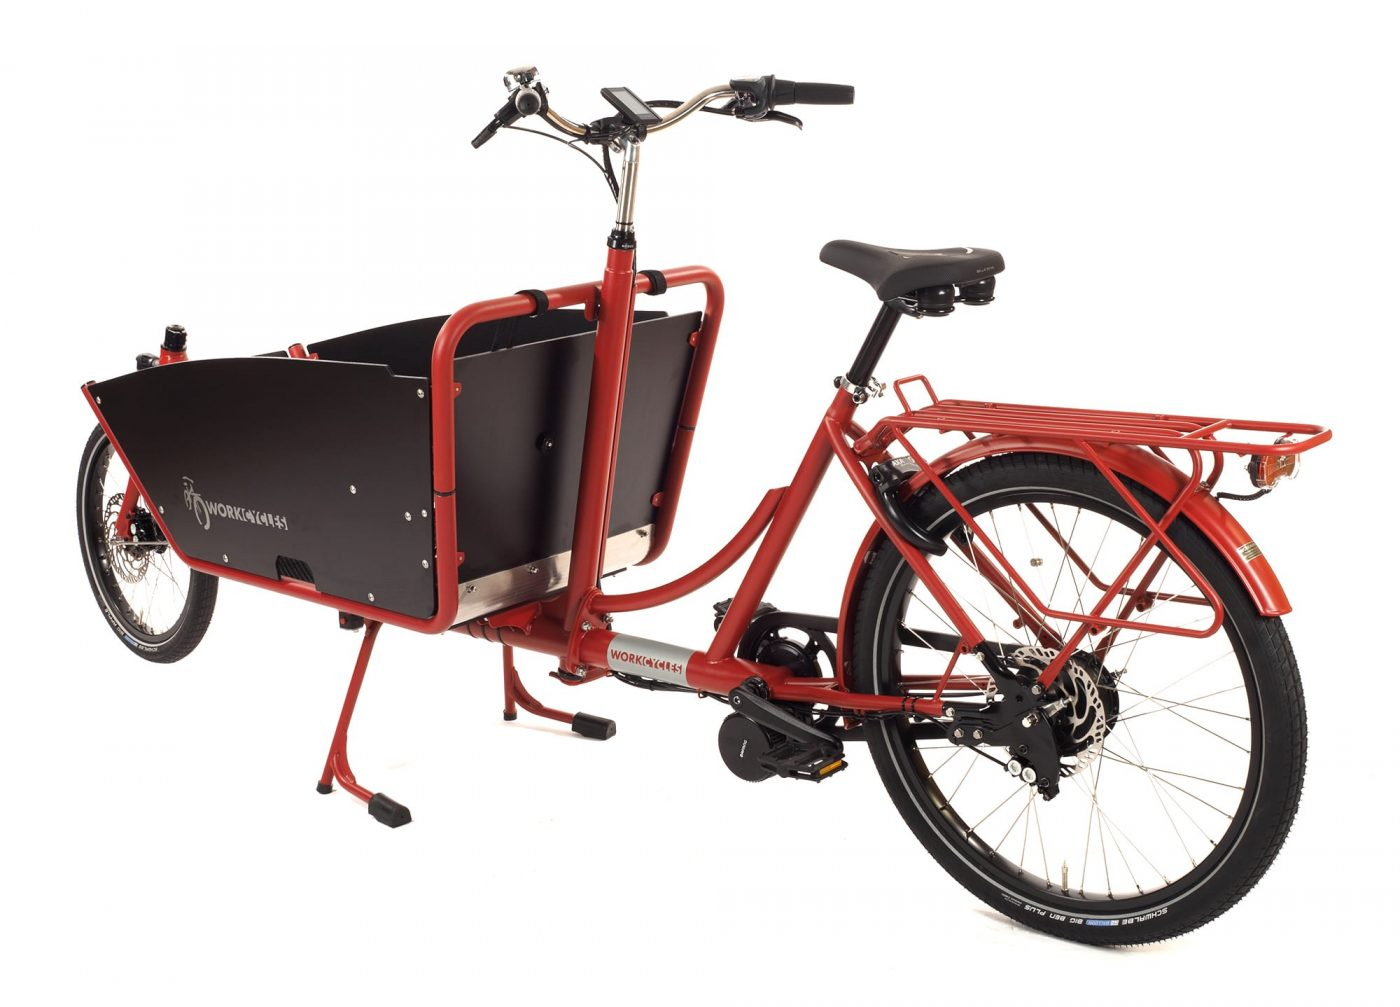 WorkCycles Kr8 MAD bakfiets, child transport bike, rear carrier, dutch e bikes